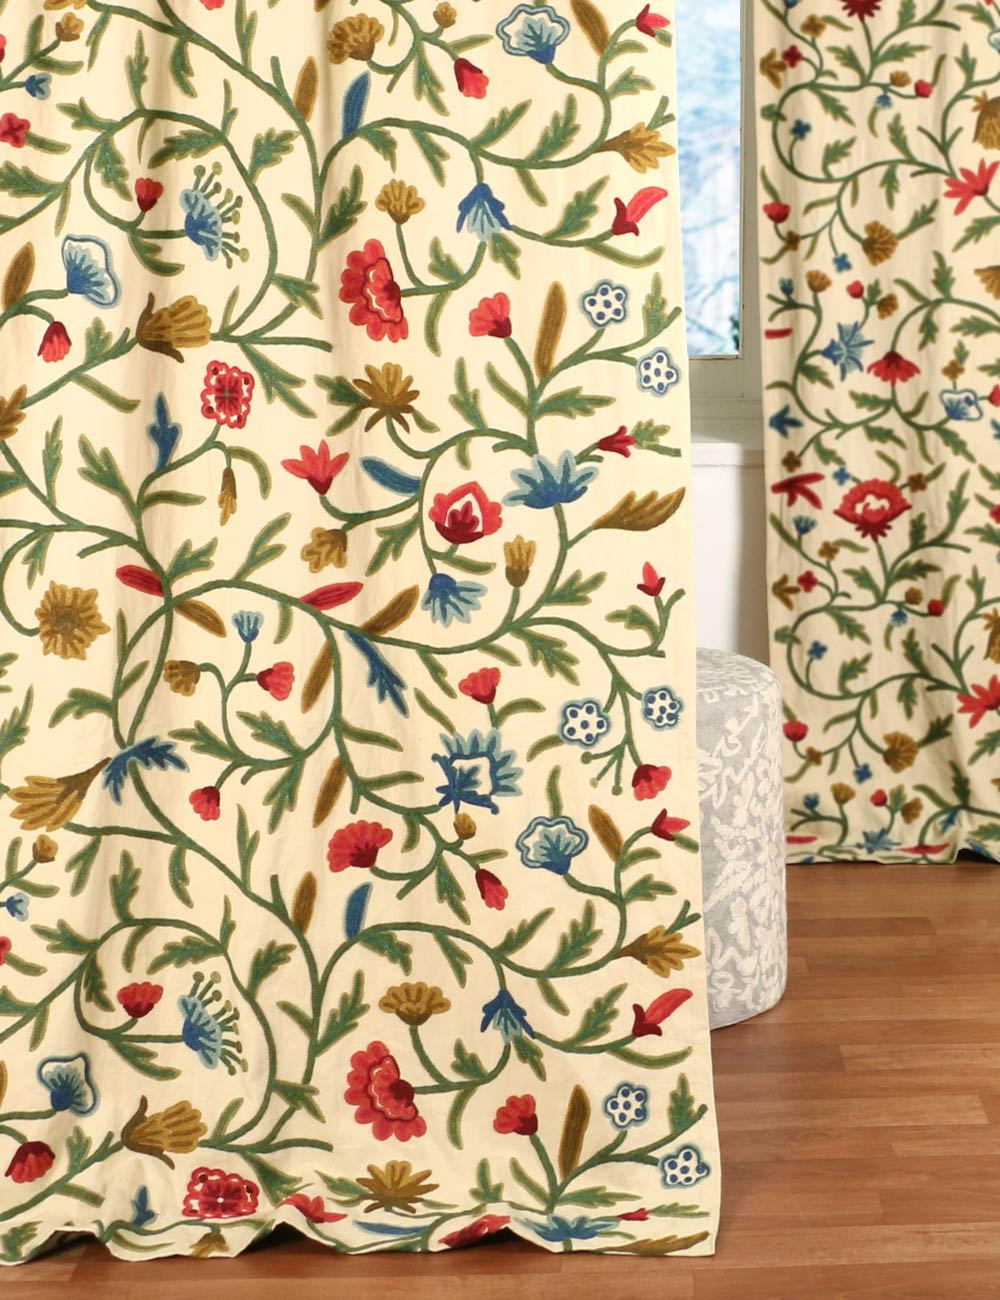 Cotton Curtain Panels Wular Crewel Curtain Panels And Drapes Hand Embroidered Cotton Fabric